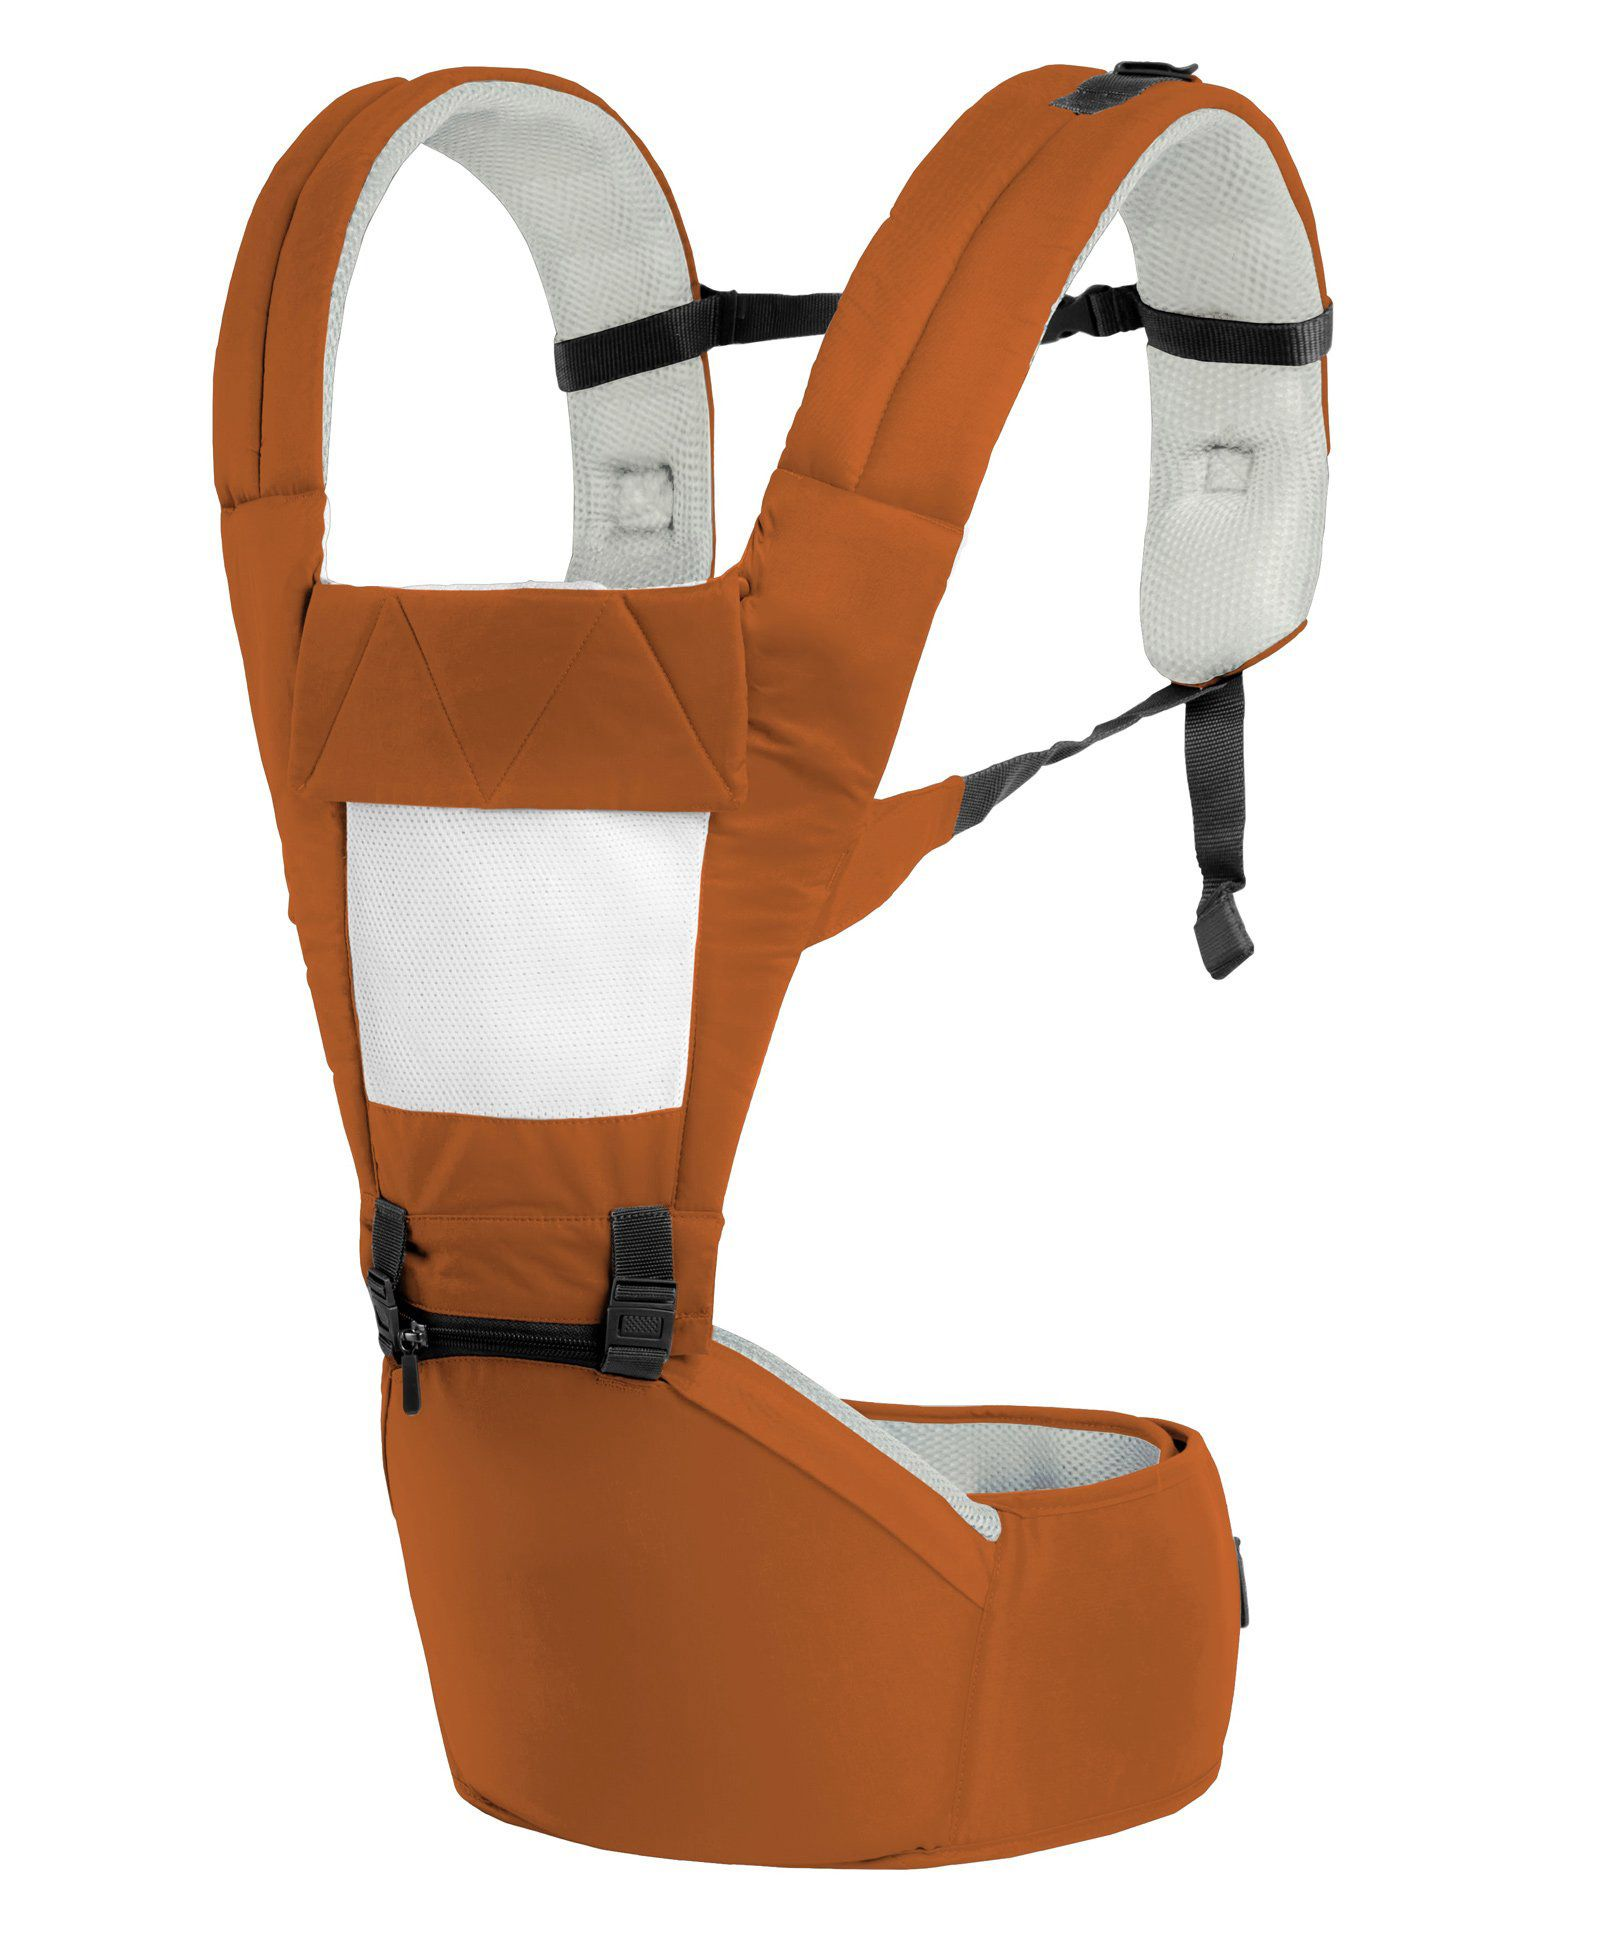 R for Rabbit Upsy Daisy Smart Hip Seat Baby Carrier - Brown Cream